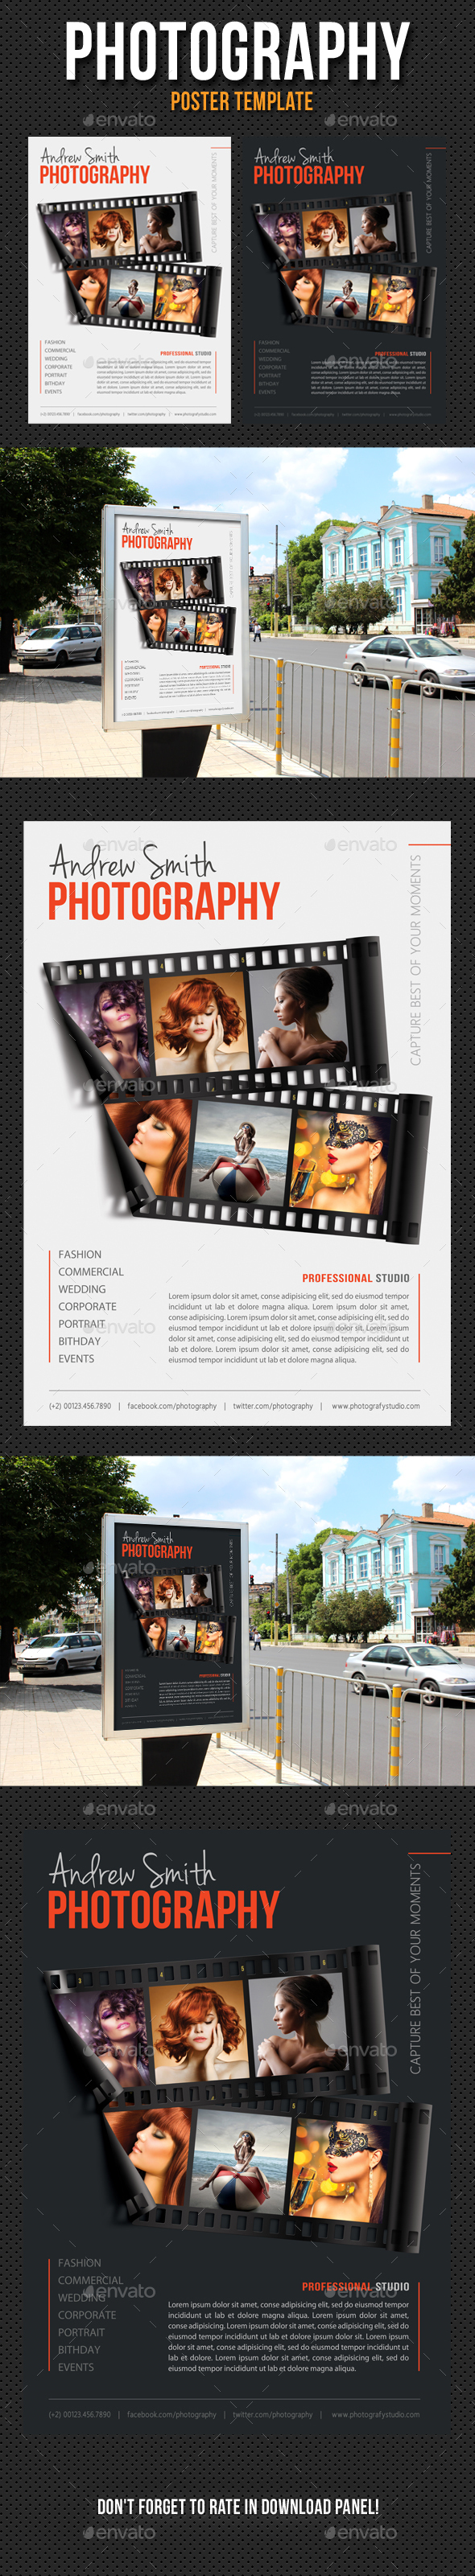 Photography Poster Template V09 - Signage Print Templates